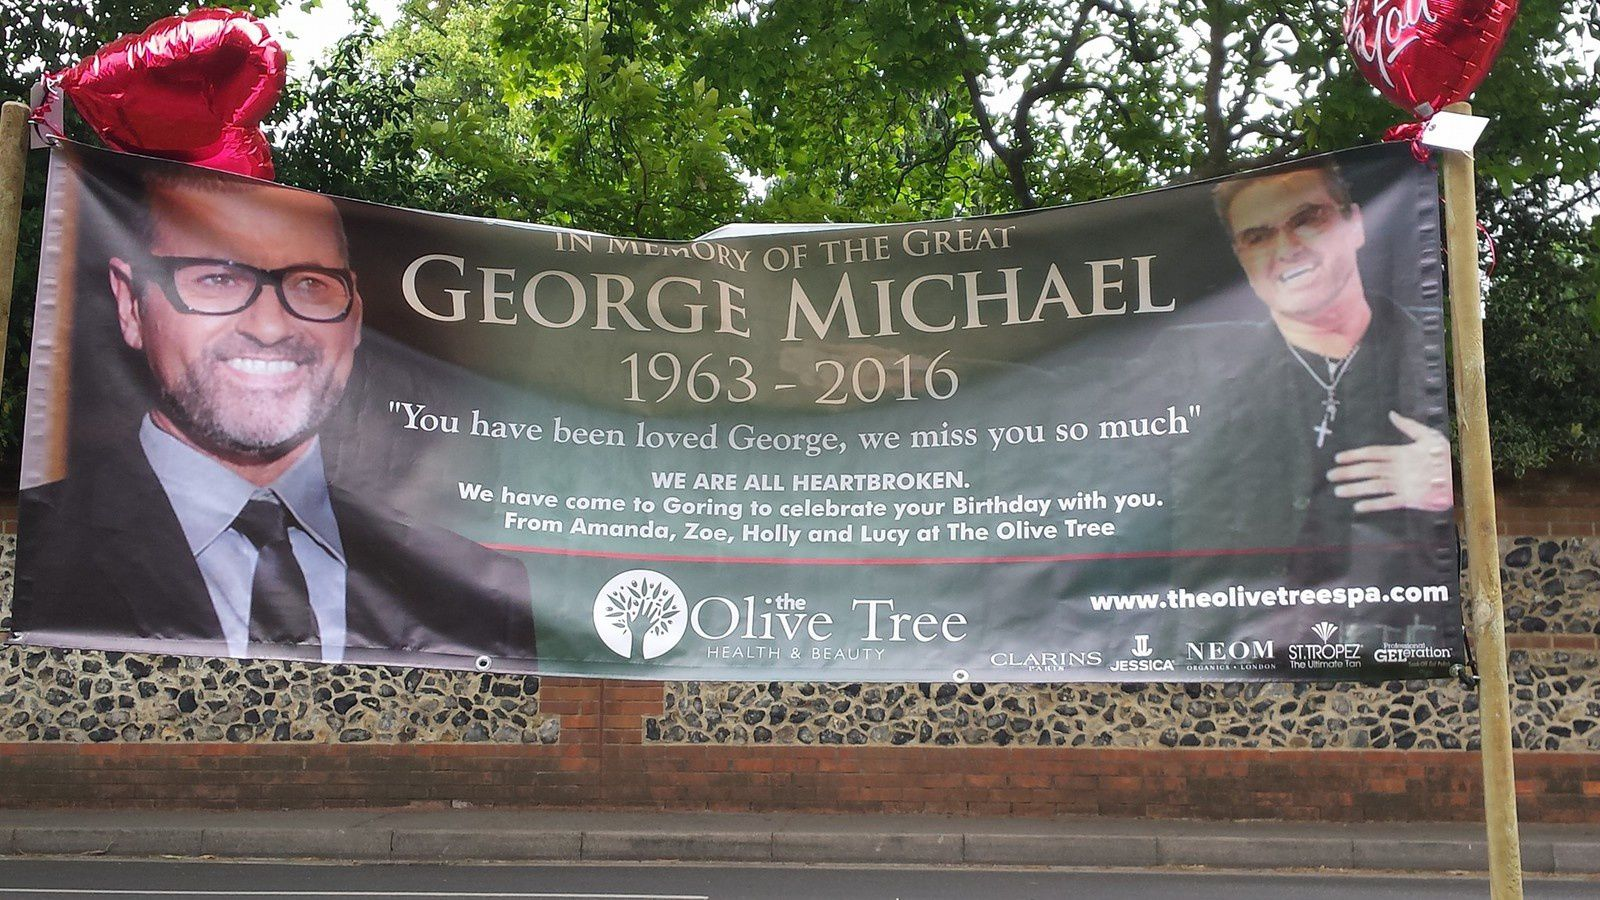 Fan shares for George's birthday !!